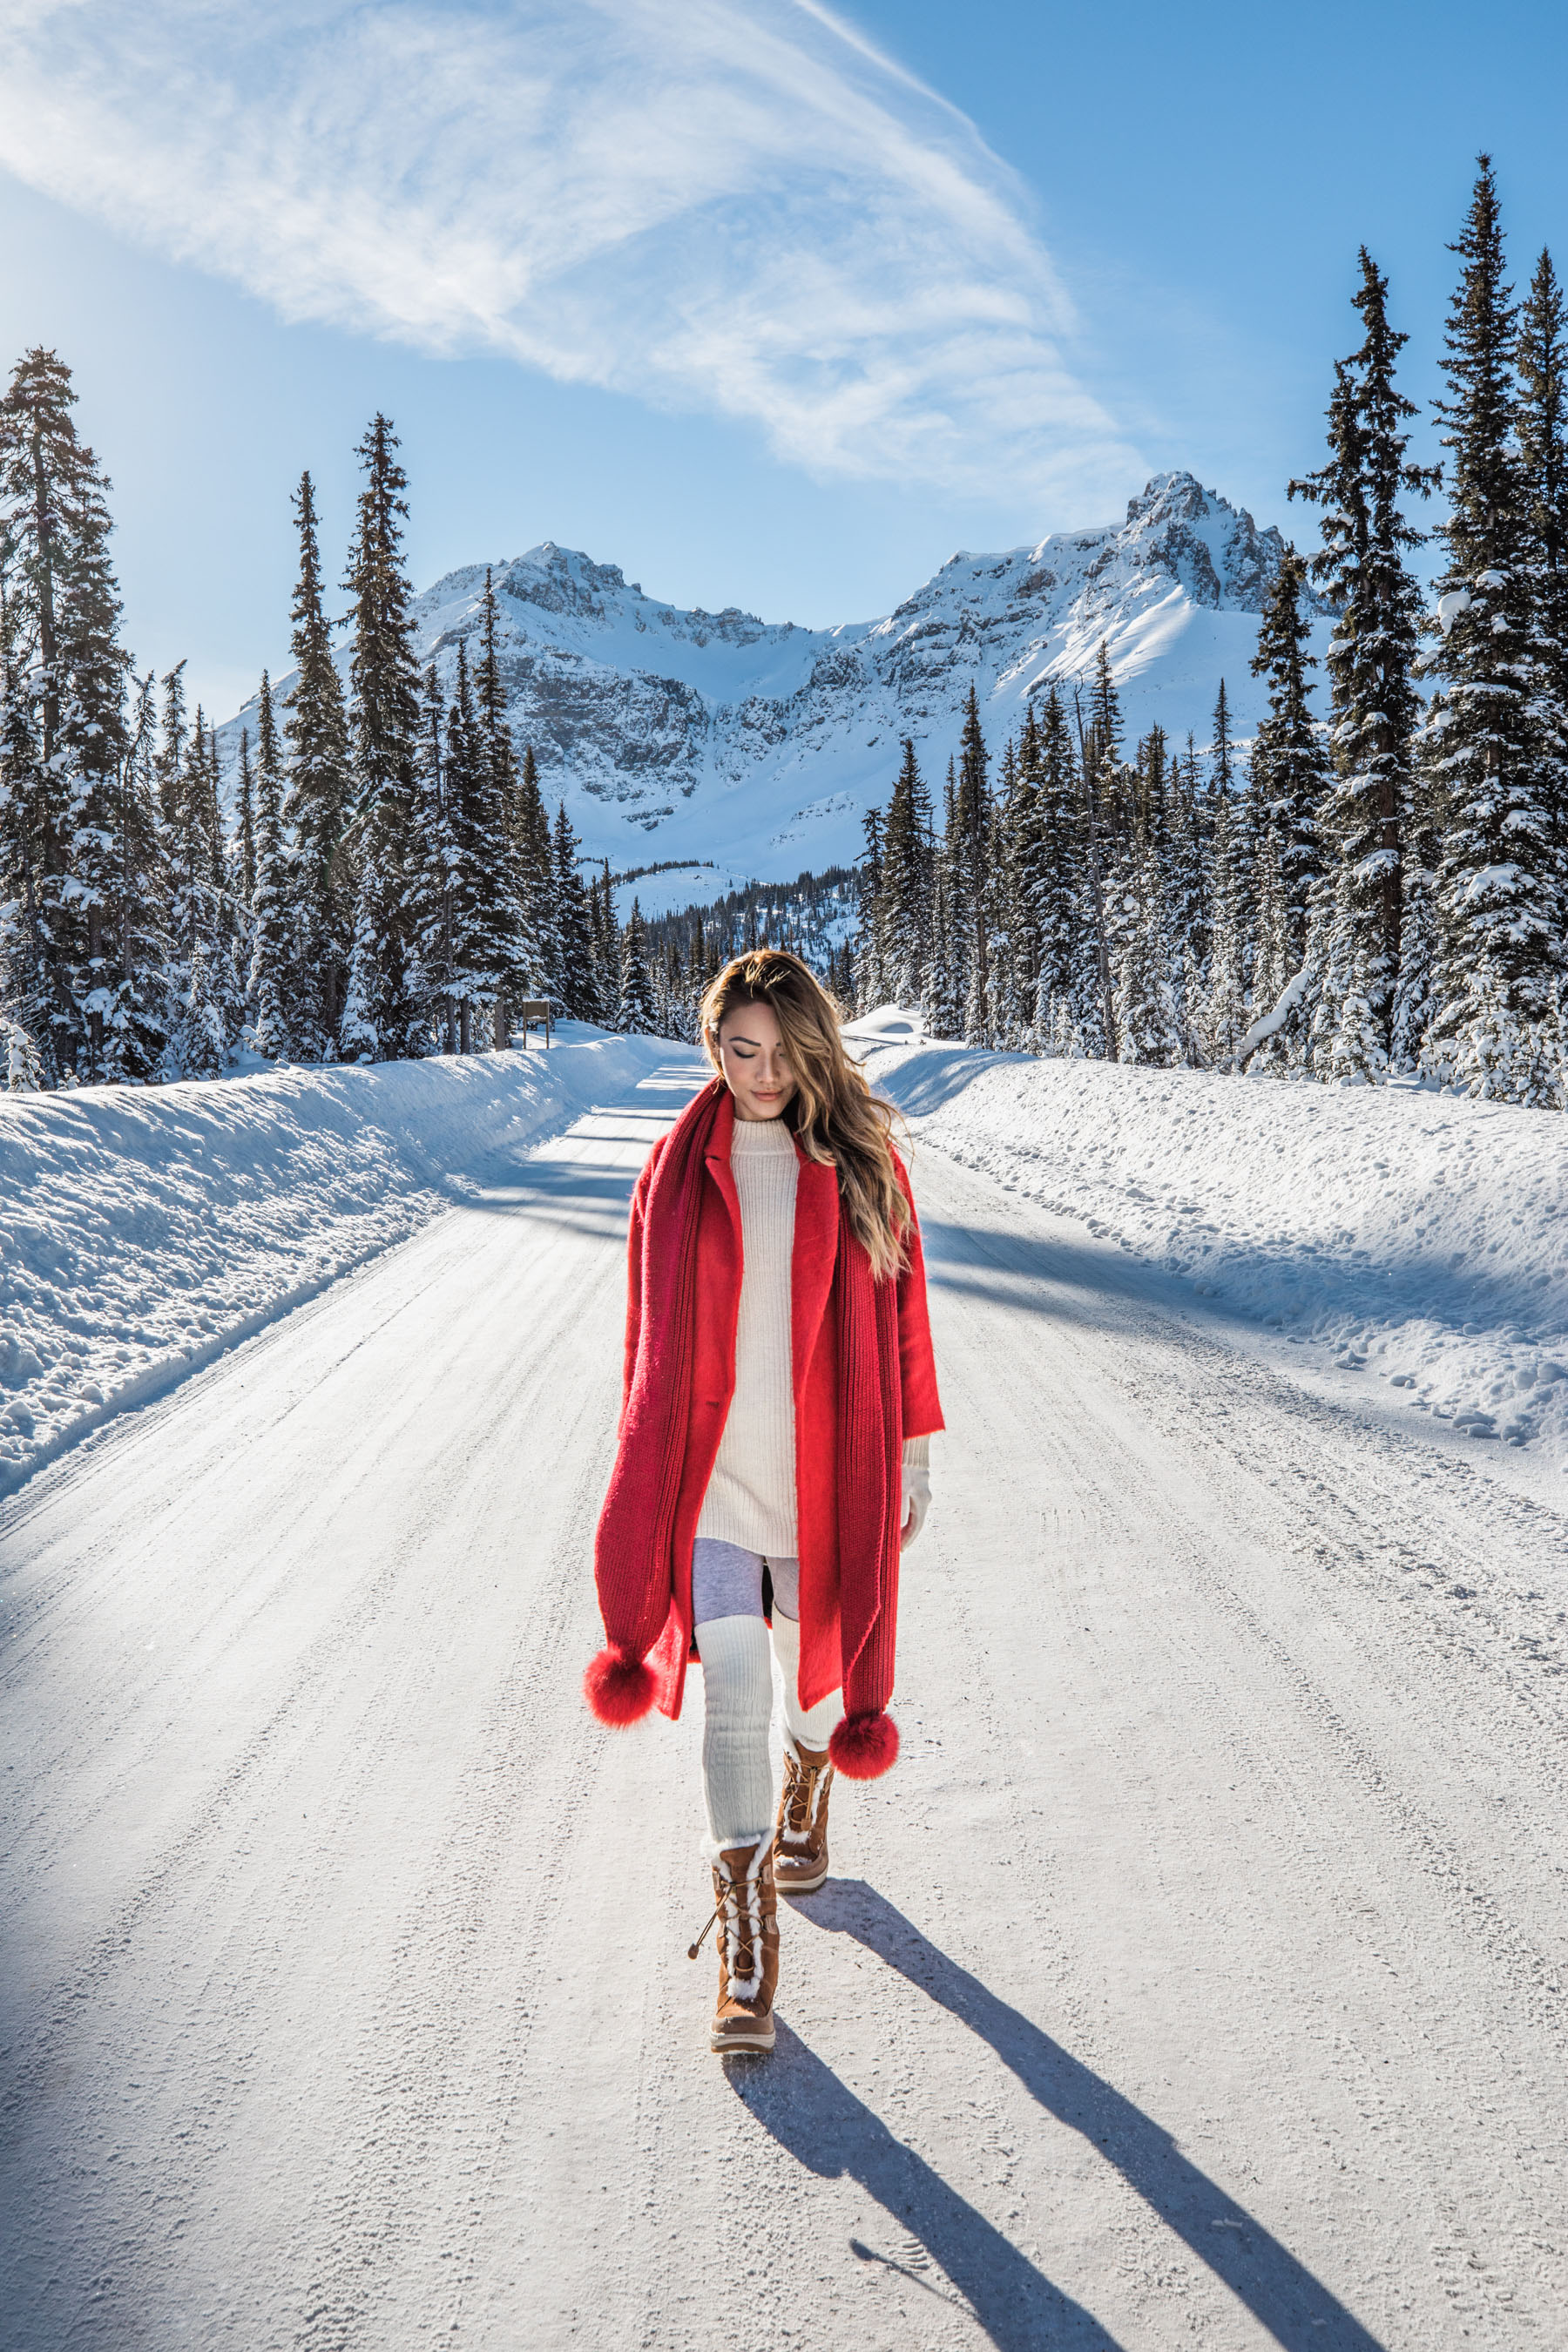 Banff Travel Guide - Red Coat with Pom Pom Scarf and Snow Boots // Notjessfashion.com